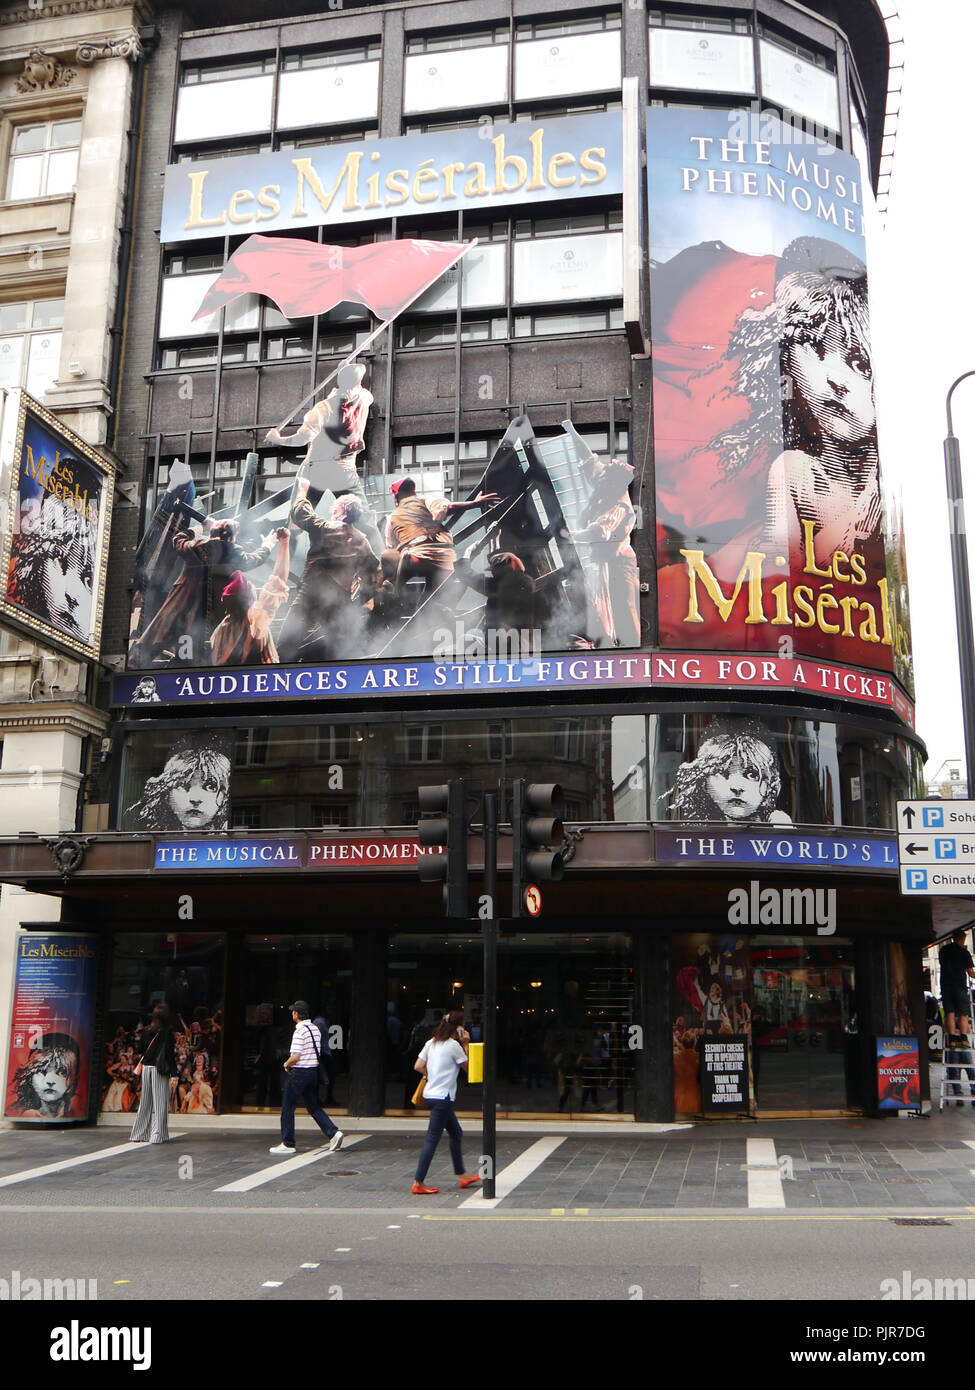 The Queens theatre, London, showing the musical Les Miserables - Stock Image